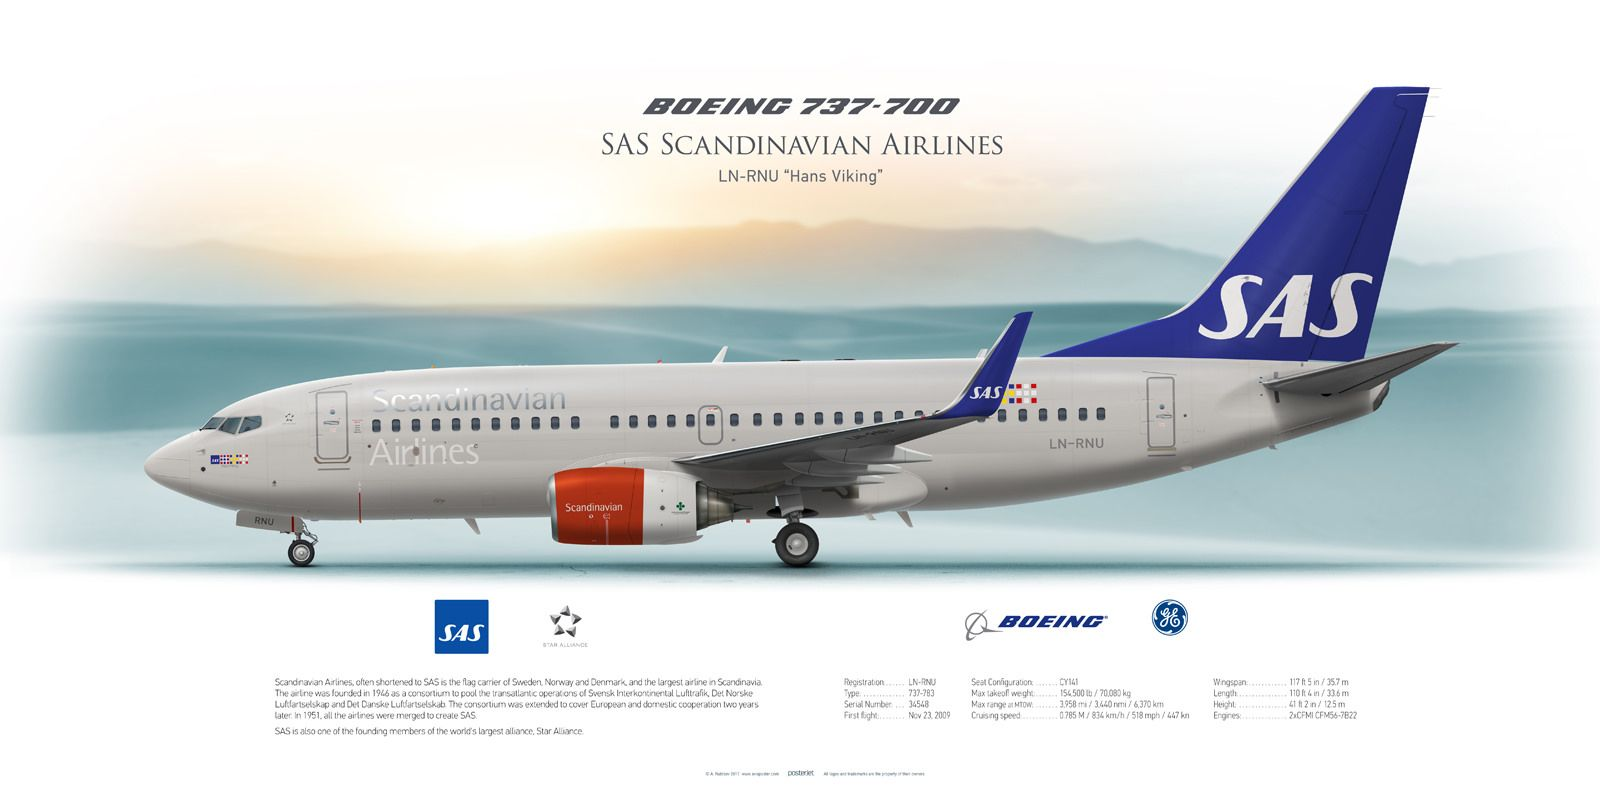 Boeing 737 700 Sas Scandinavian Airlines Ln Rnu Sas Airlines Aviation Boeing